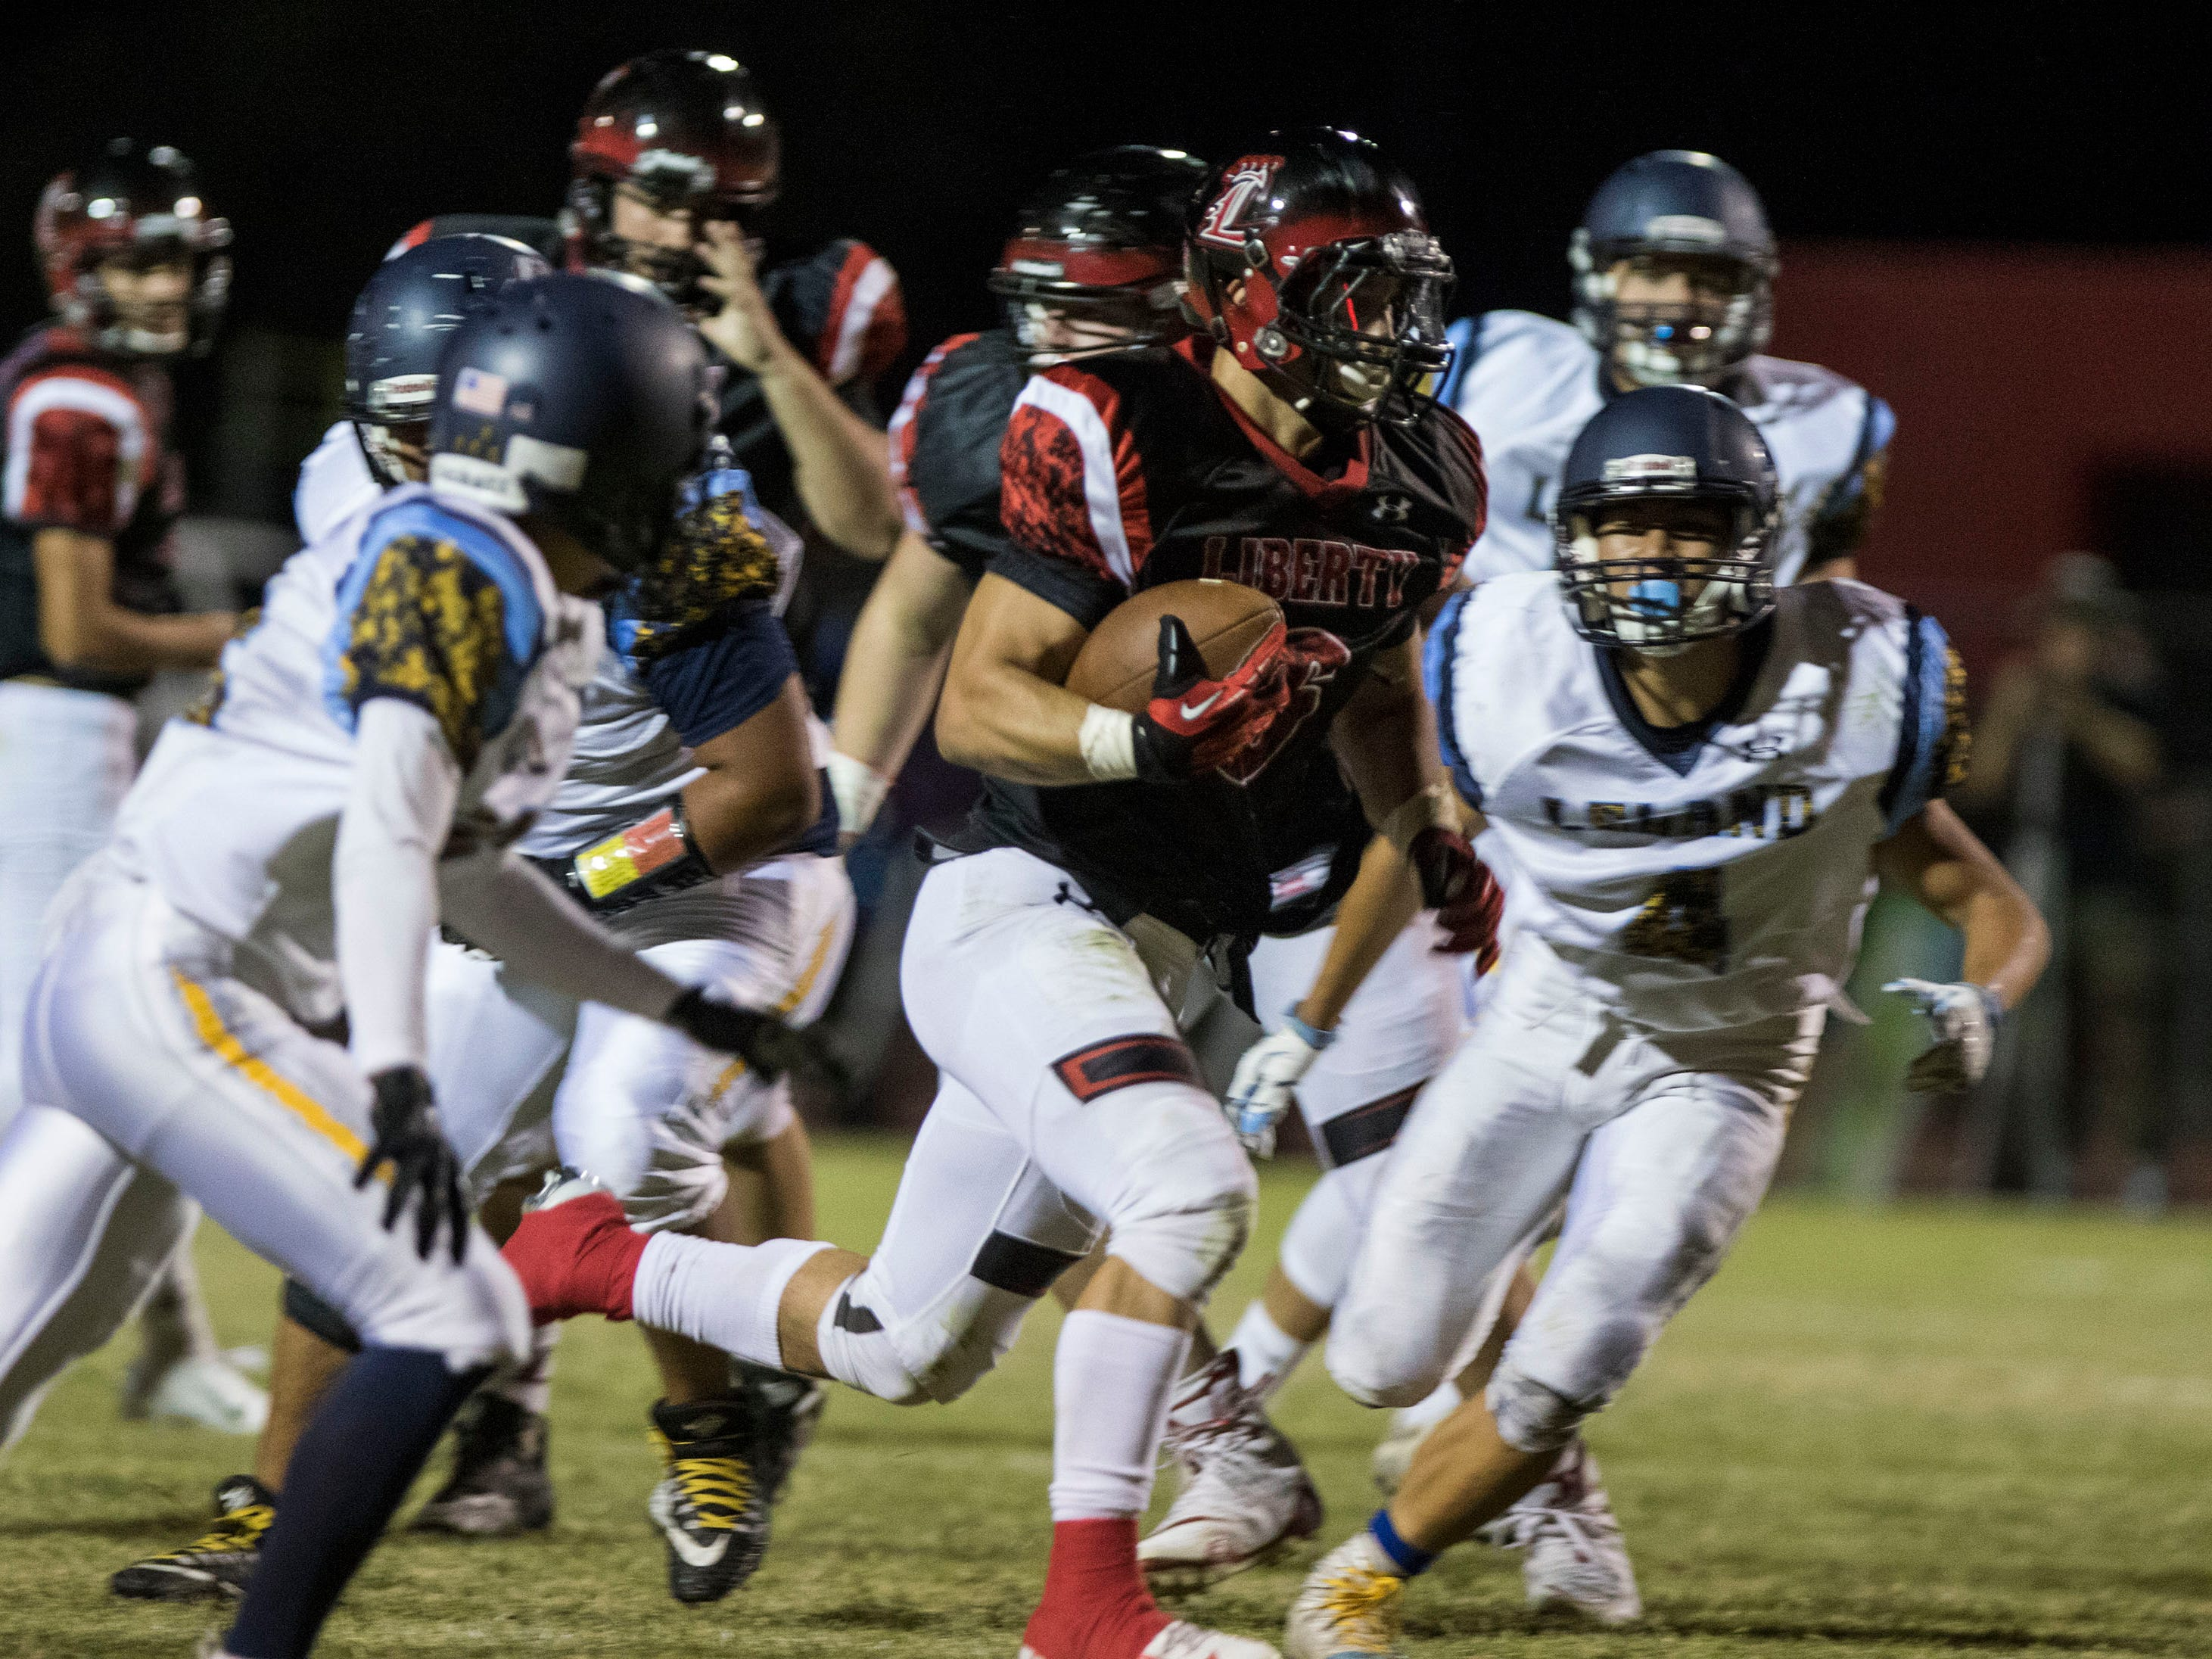 Liberty's Jett Kinsch out runs the Leland defense on his way to a touchdown during their game in Peoria Friday, Sept.14, 2018. #azhsfb